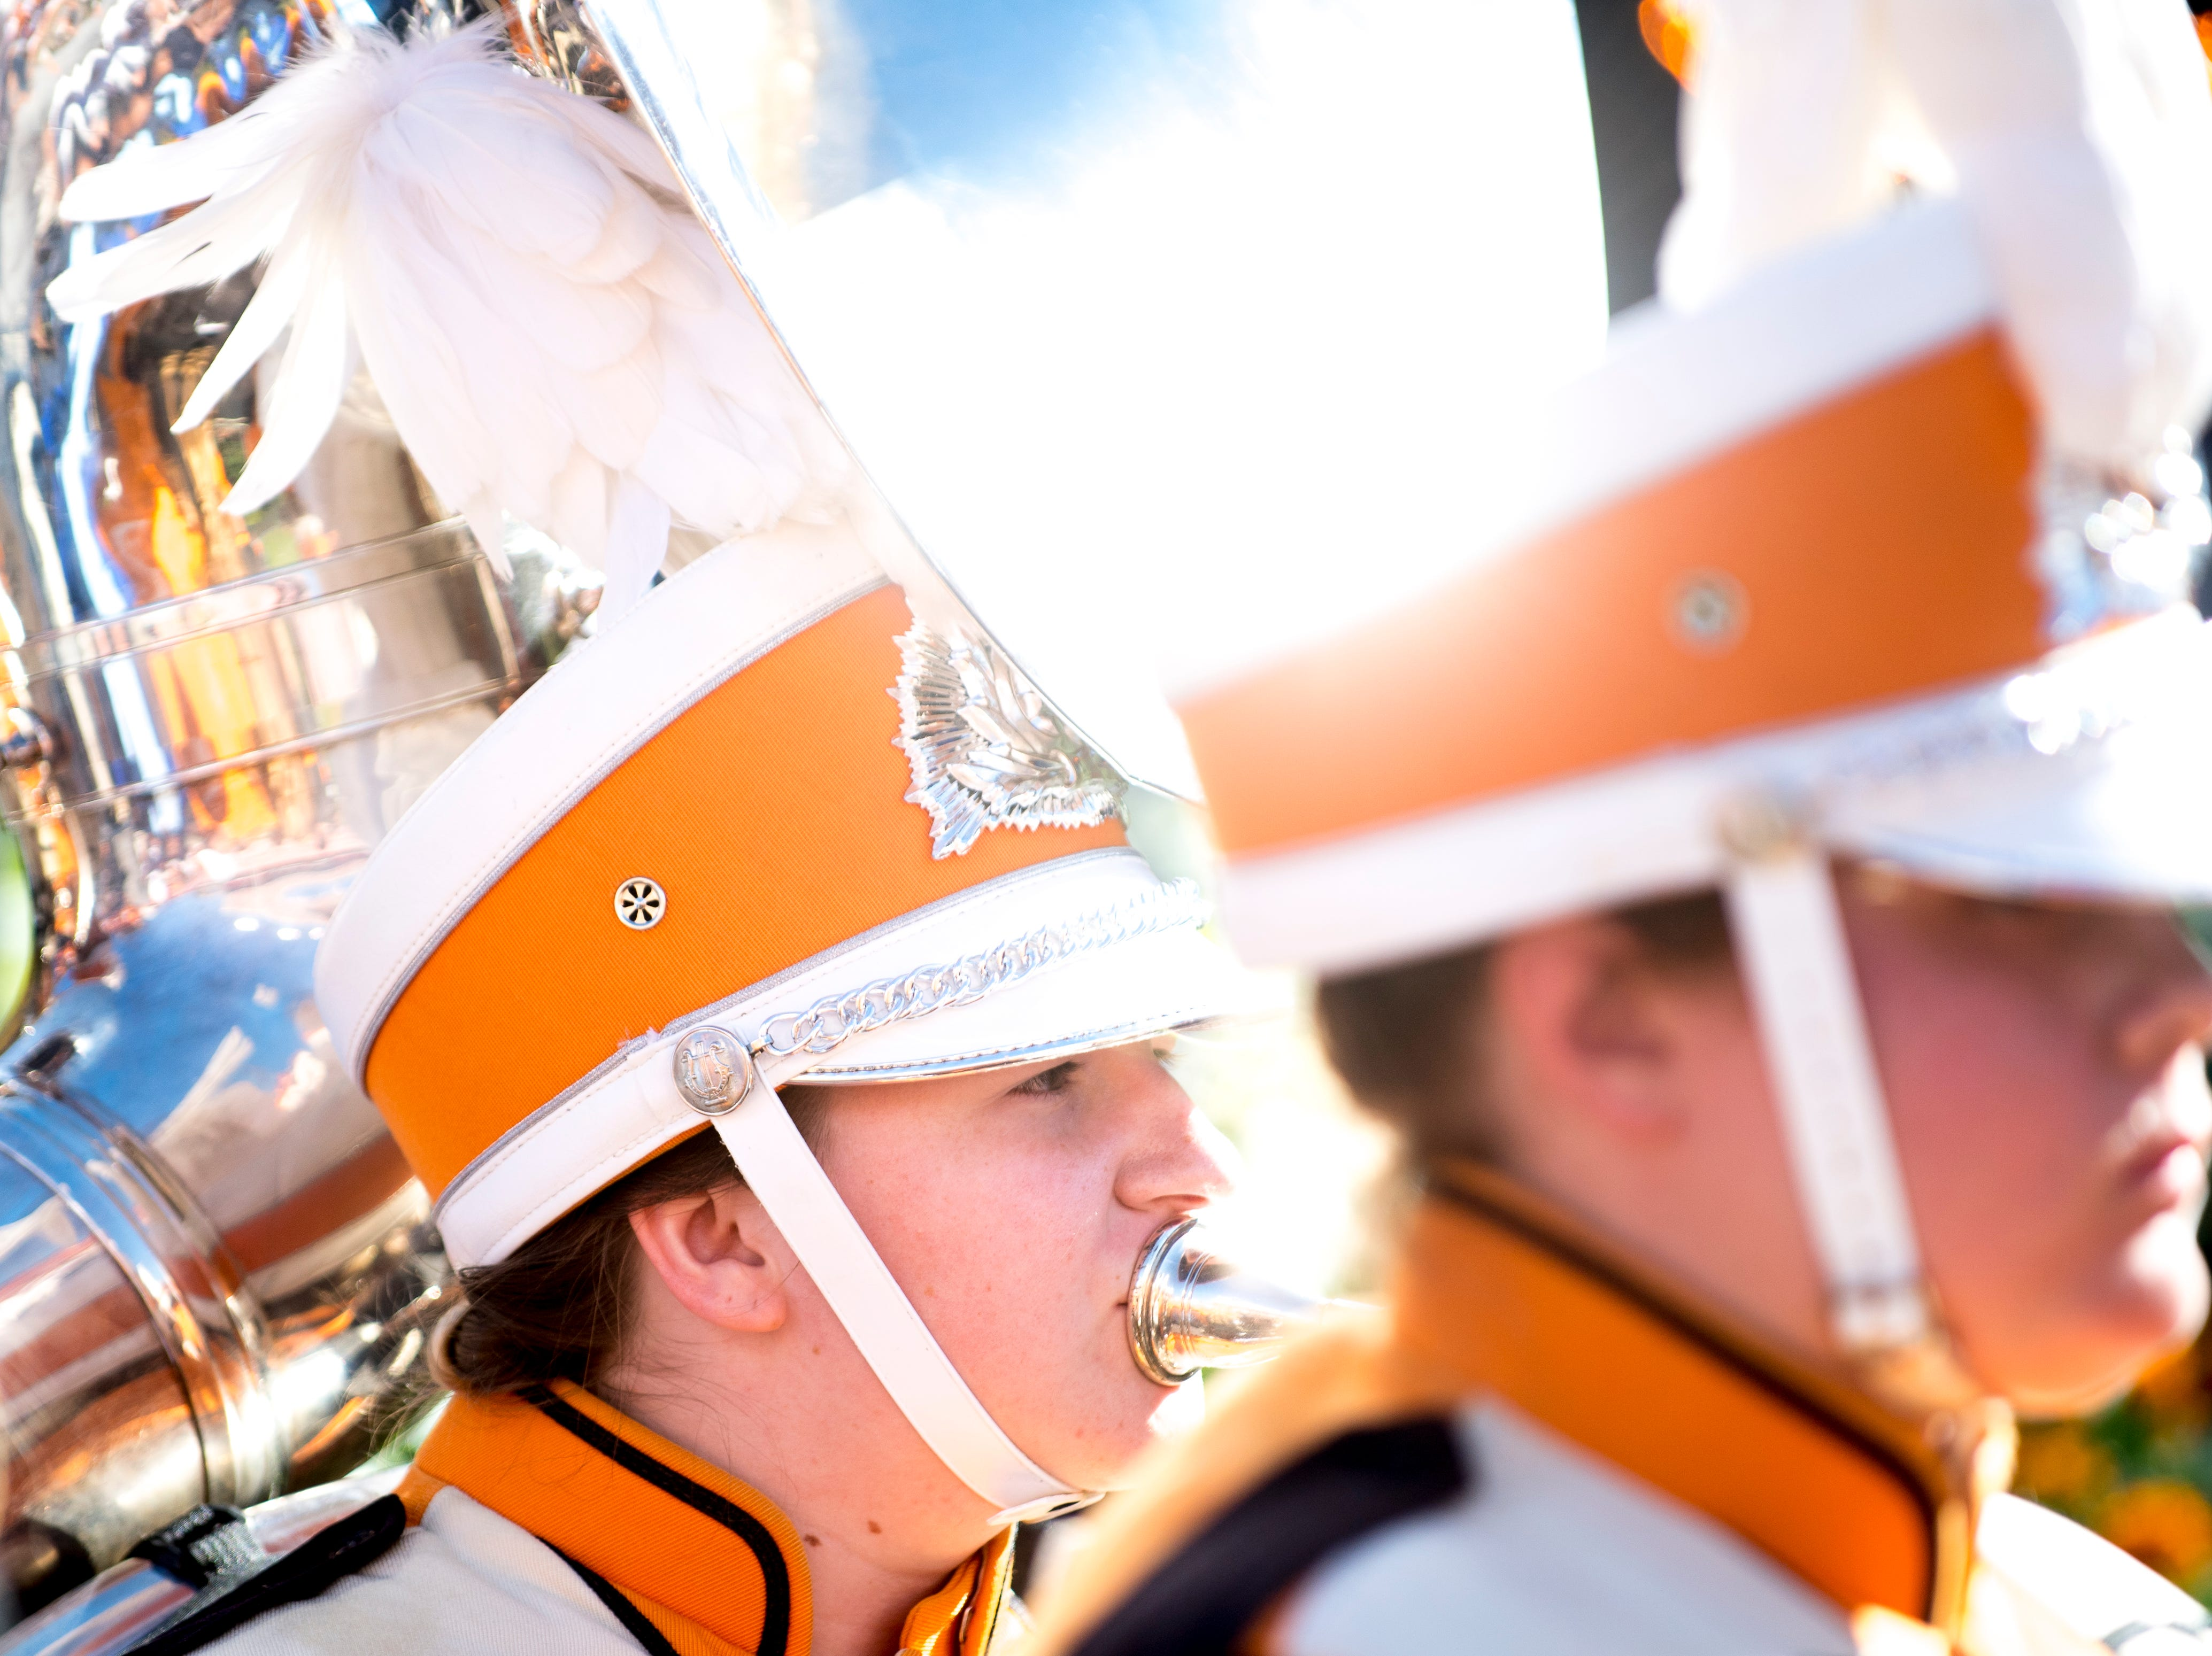 The Pride of the Southland Band marches into the stadium during a game between Tennessee and Auburn at Jordan-Hare Stadium in Auburn, Alabama on Saturday, October 13, 2018.